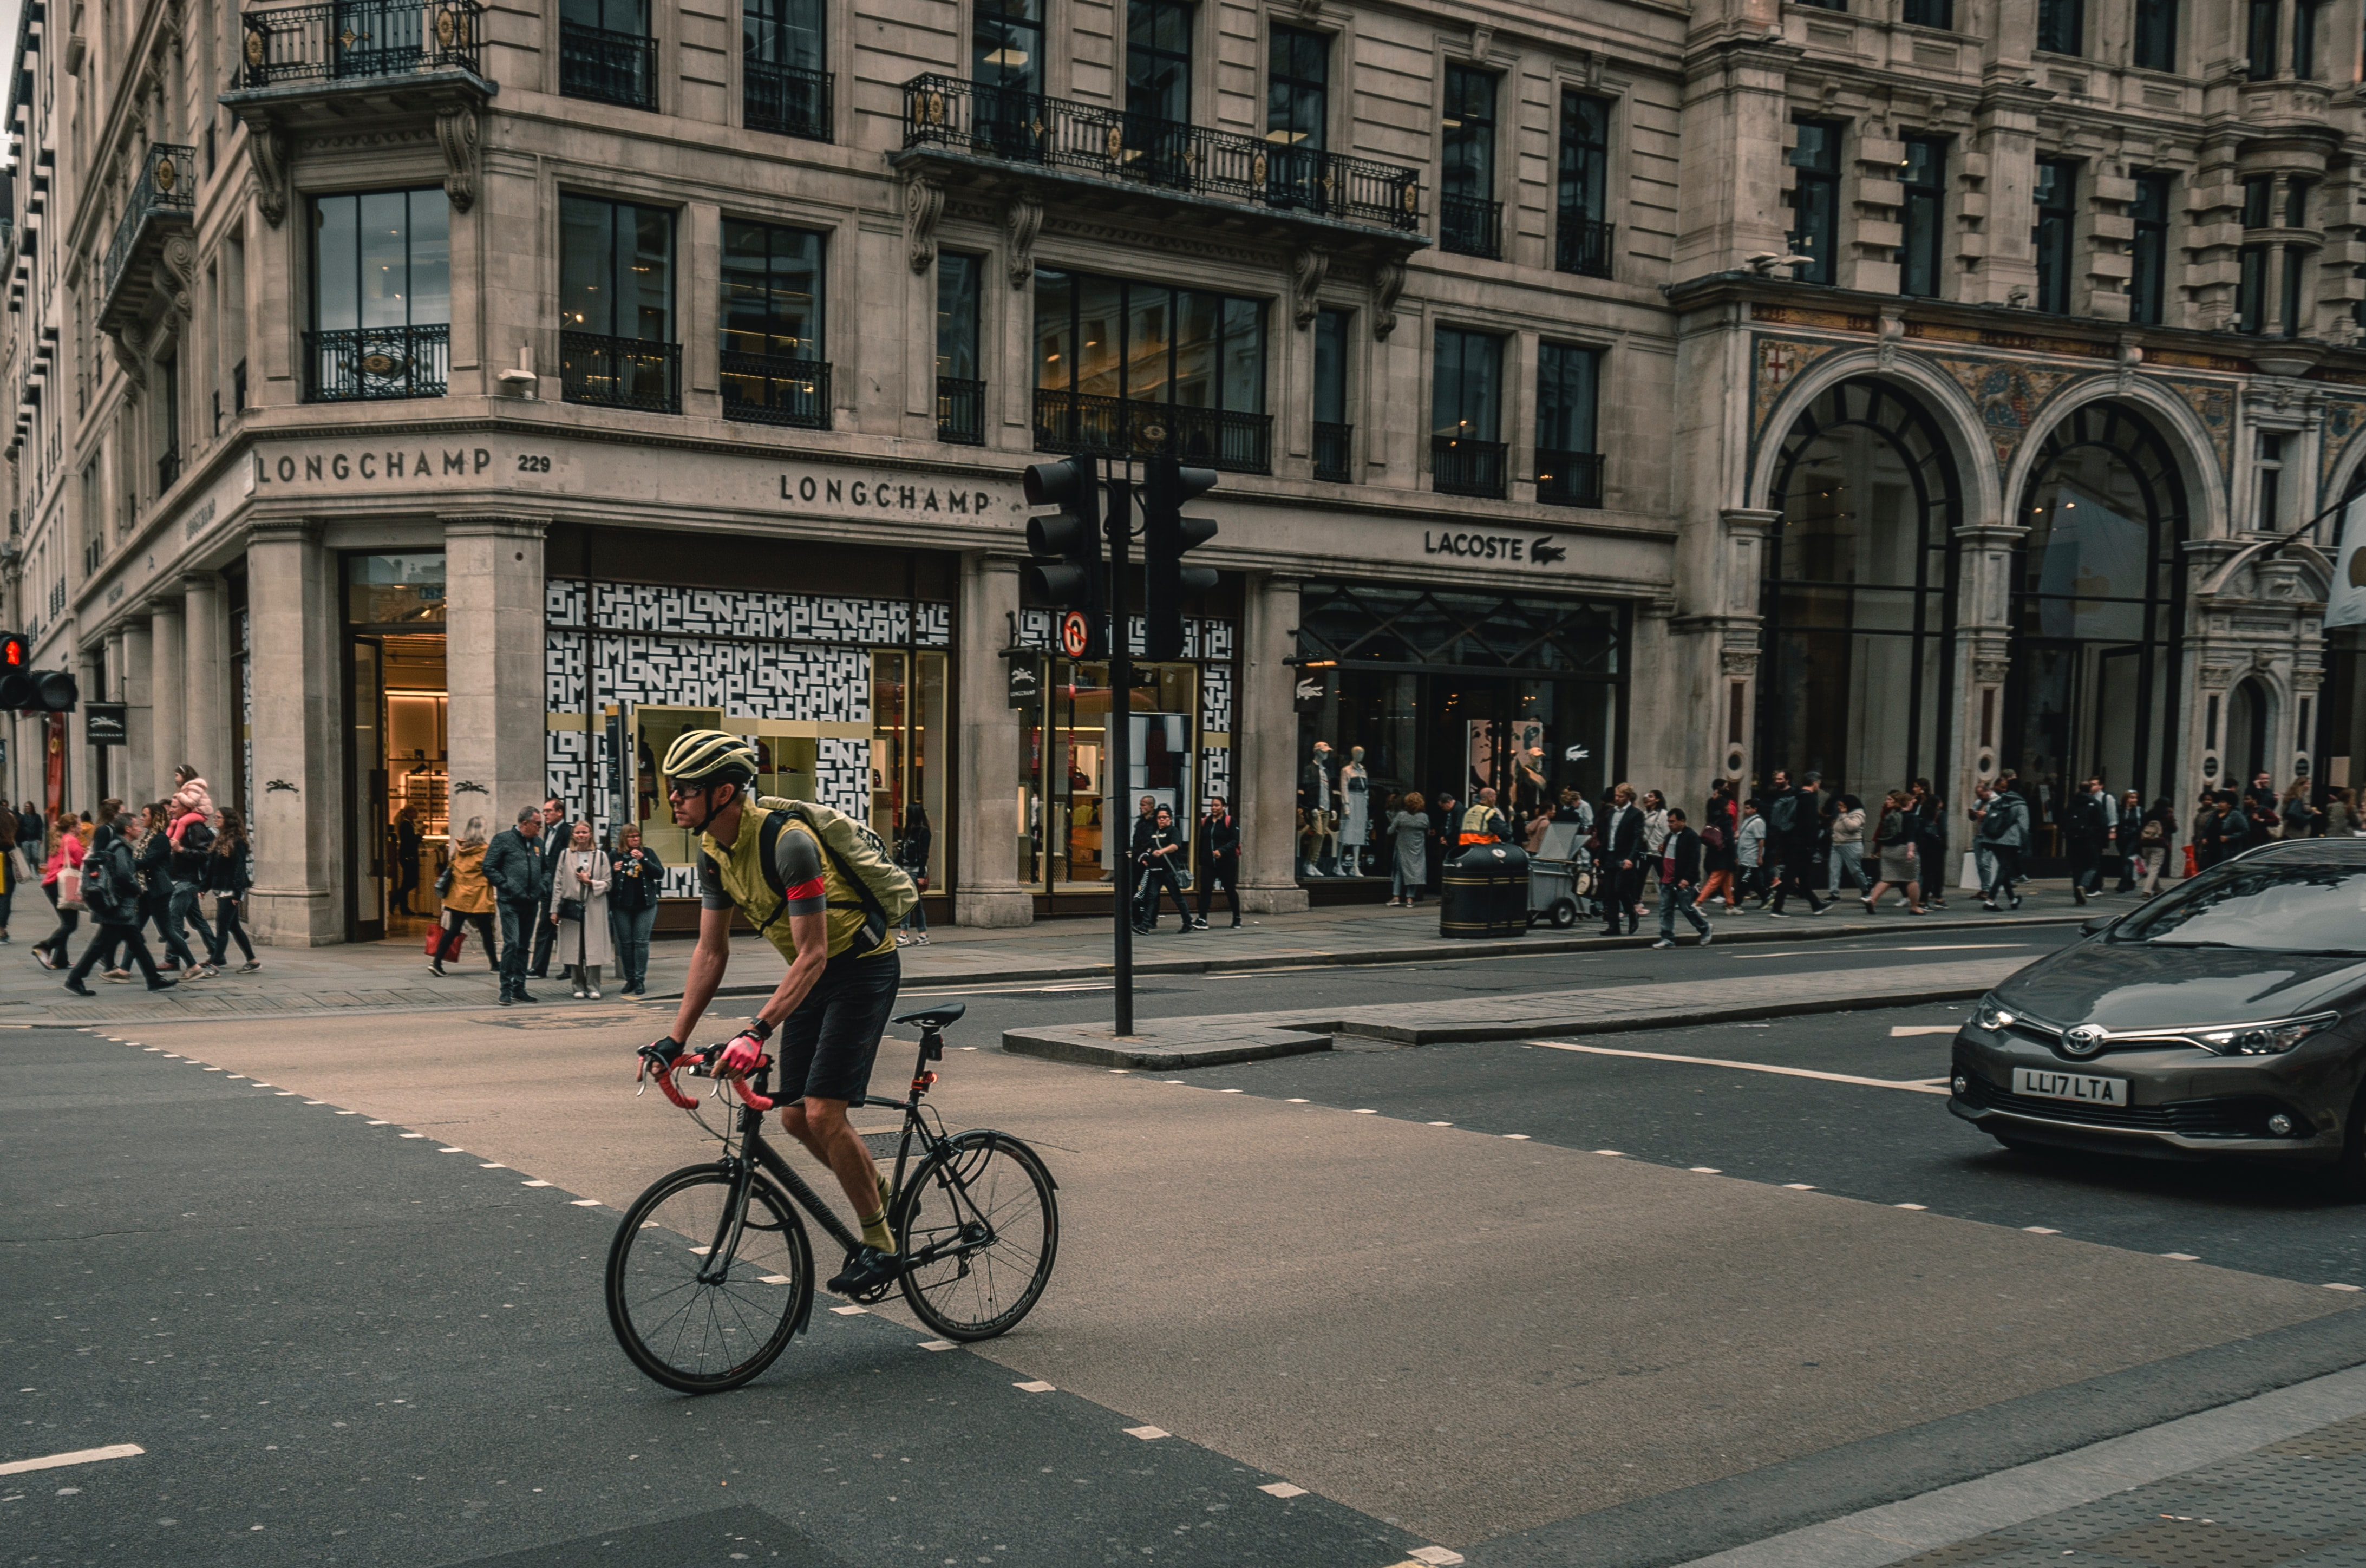 Cyclist and motorist on the road; image by Karl Bewick, via Unsplash.com.